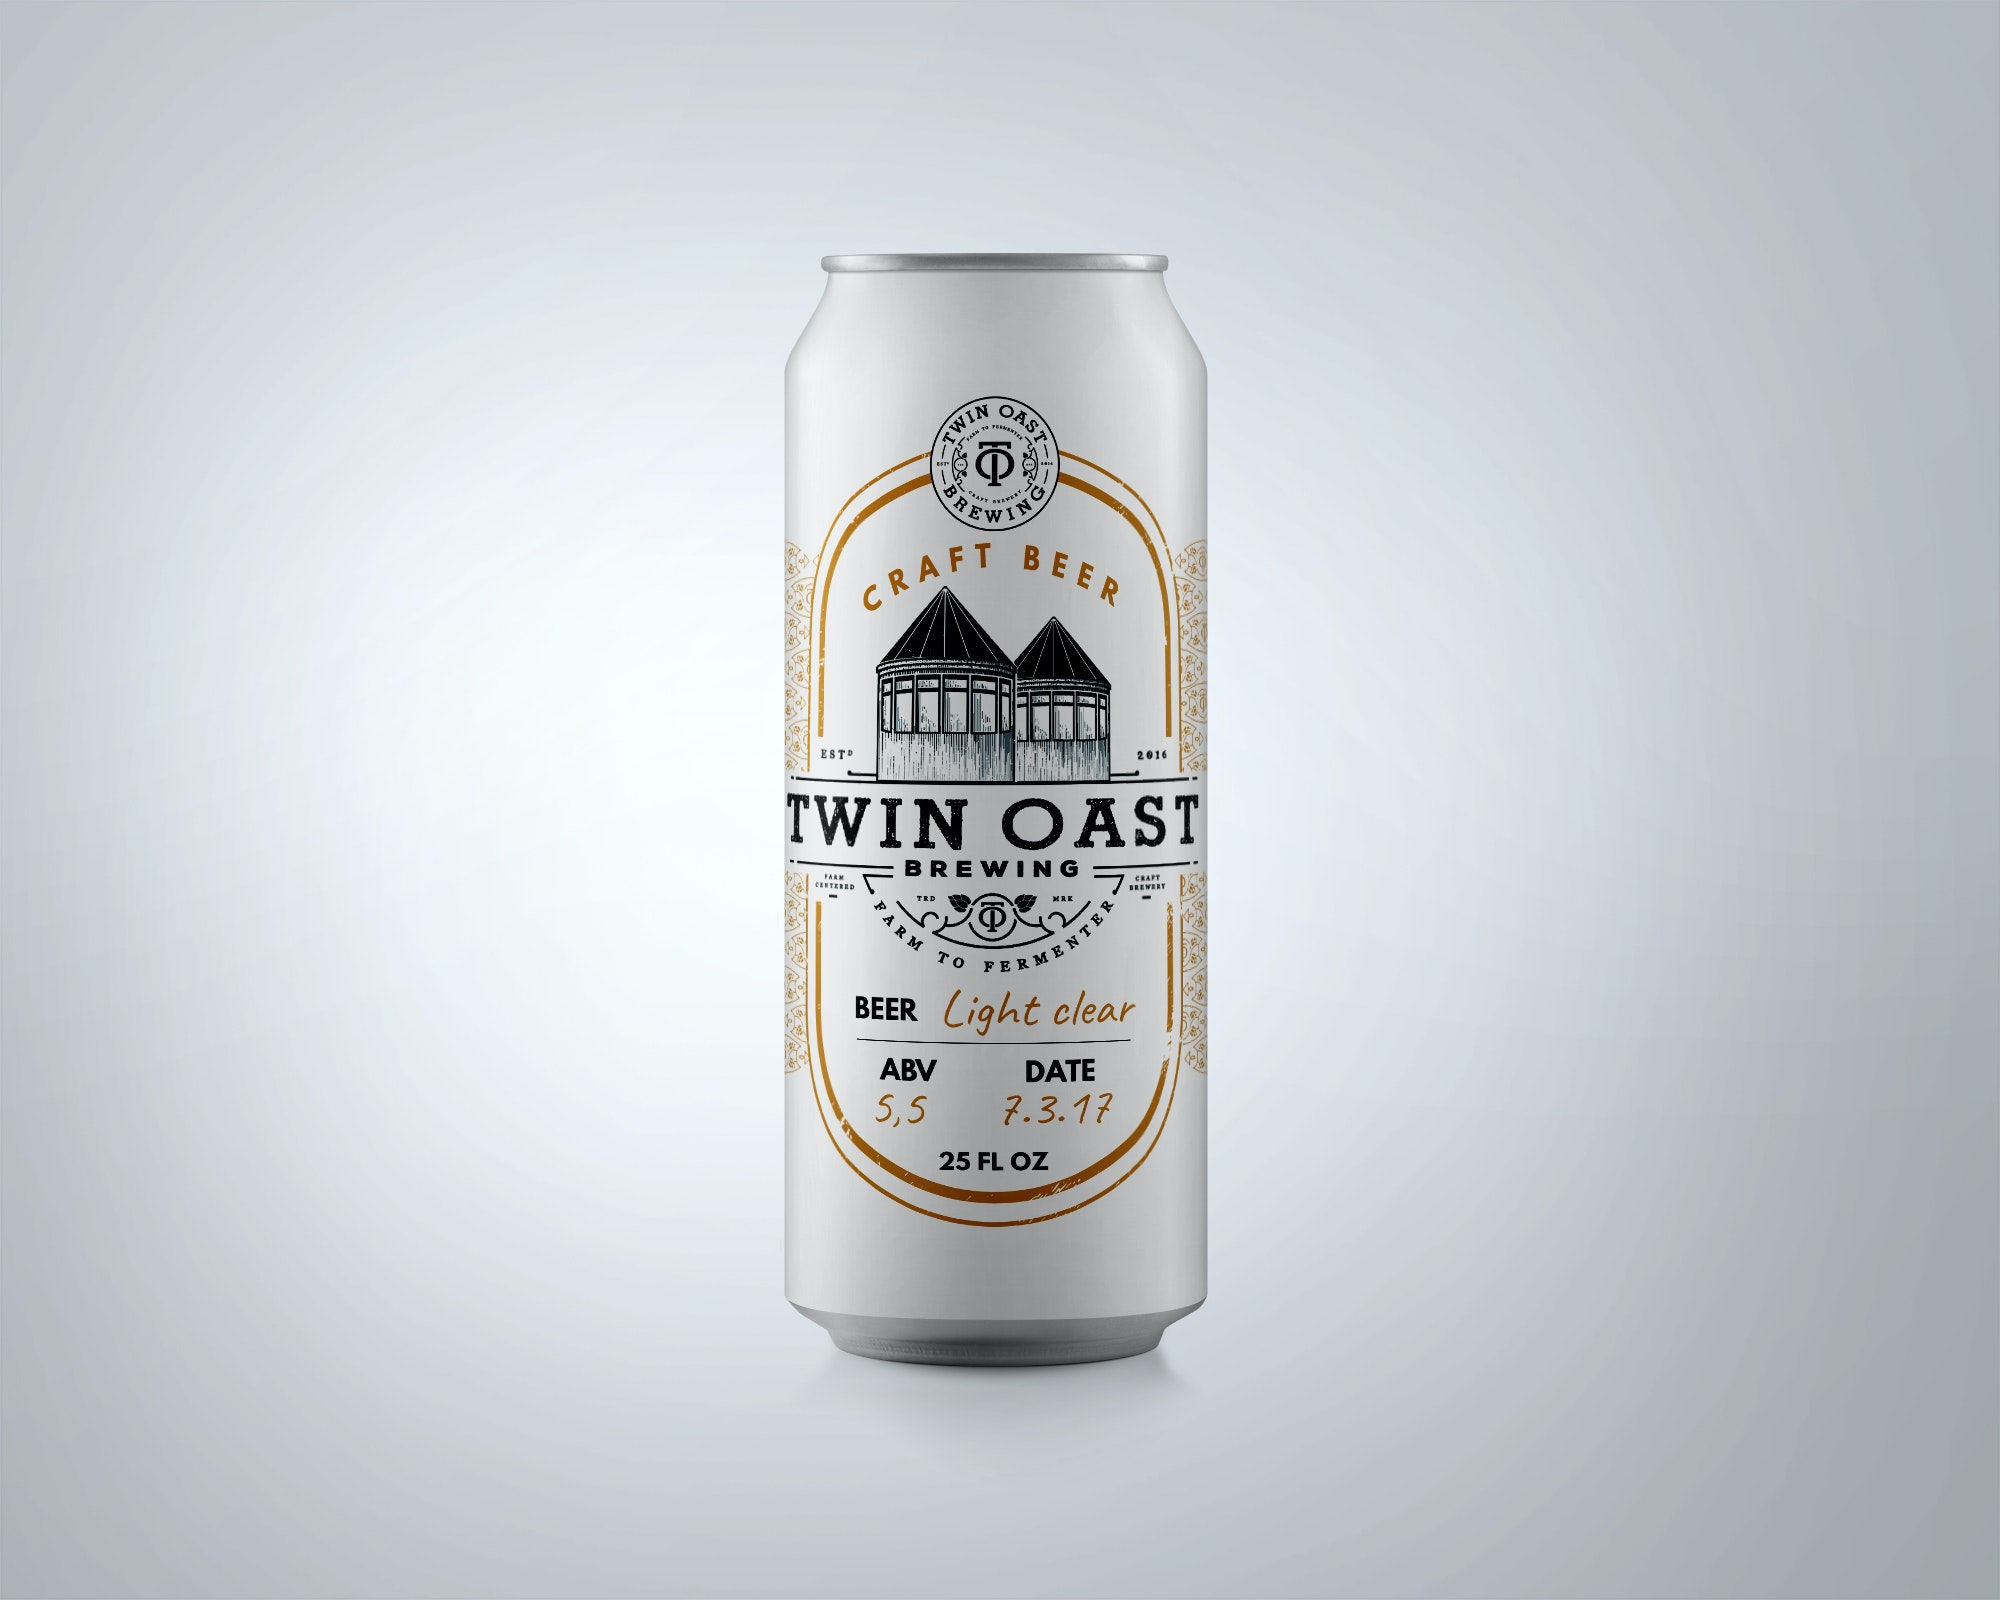 Twin Oast old fashioned beer label